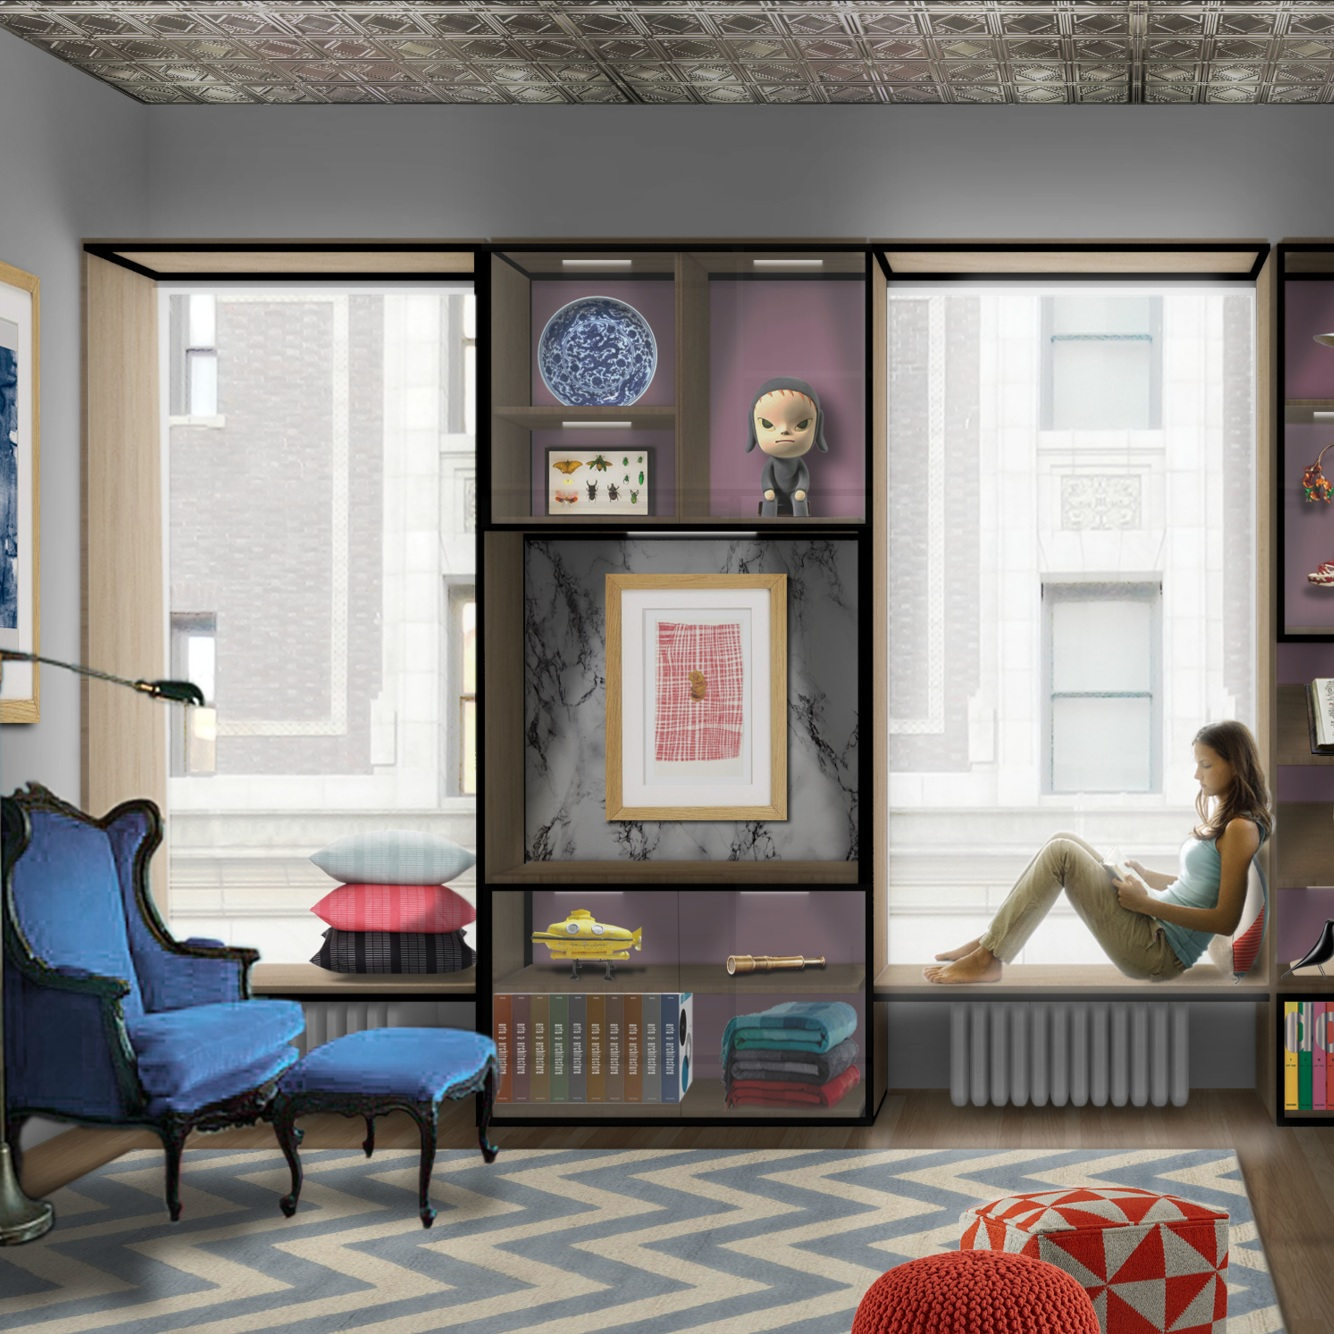 New York City Apartment   An interiors project to redesign the apartment of an avid art collector